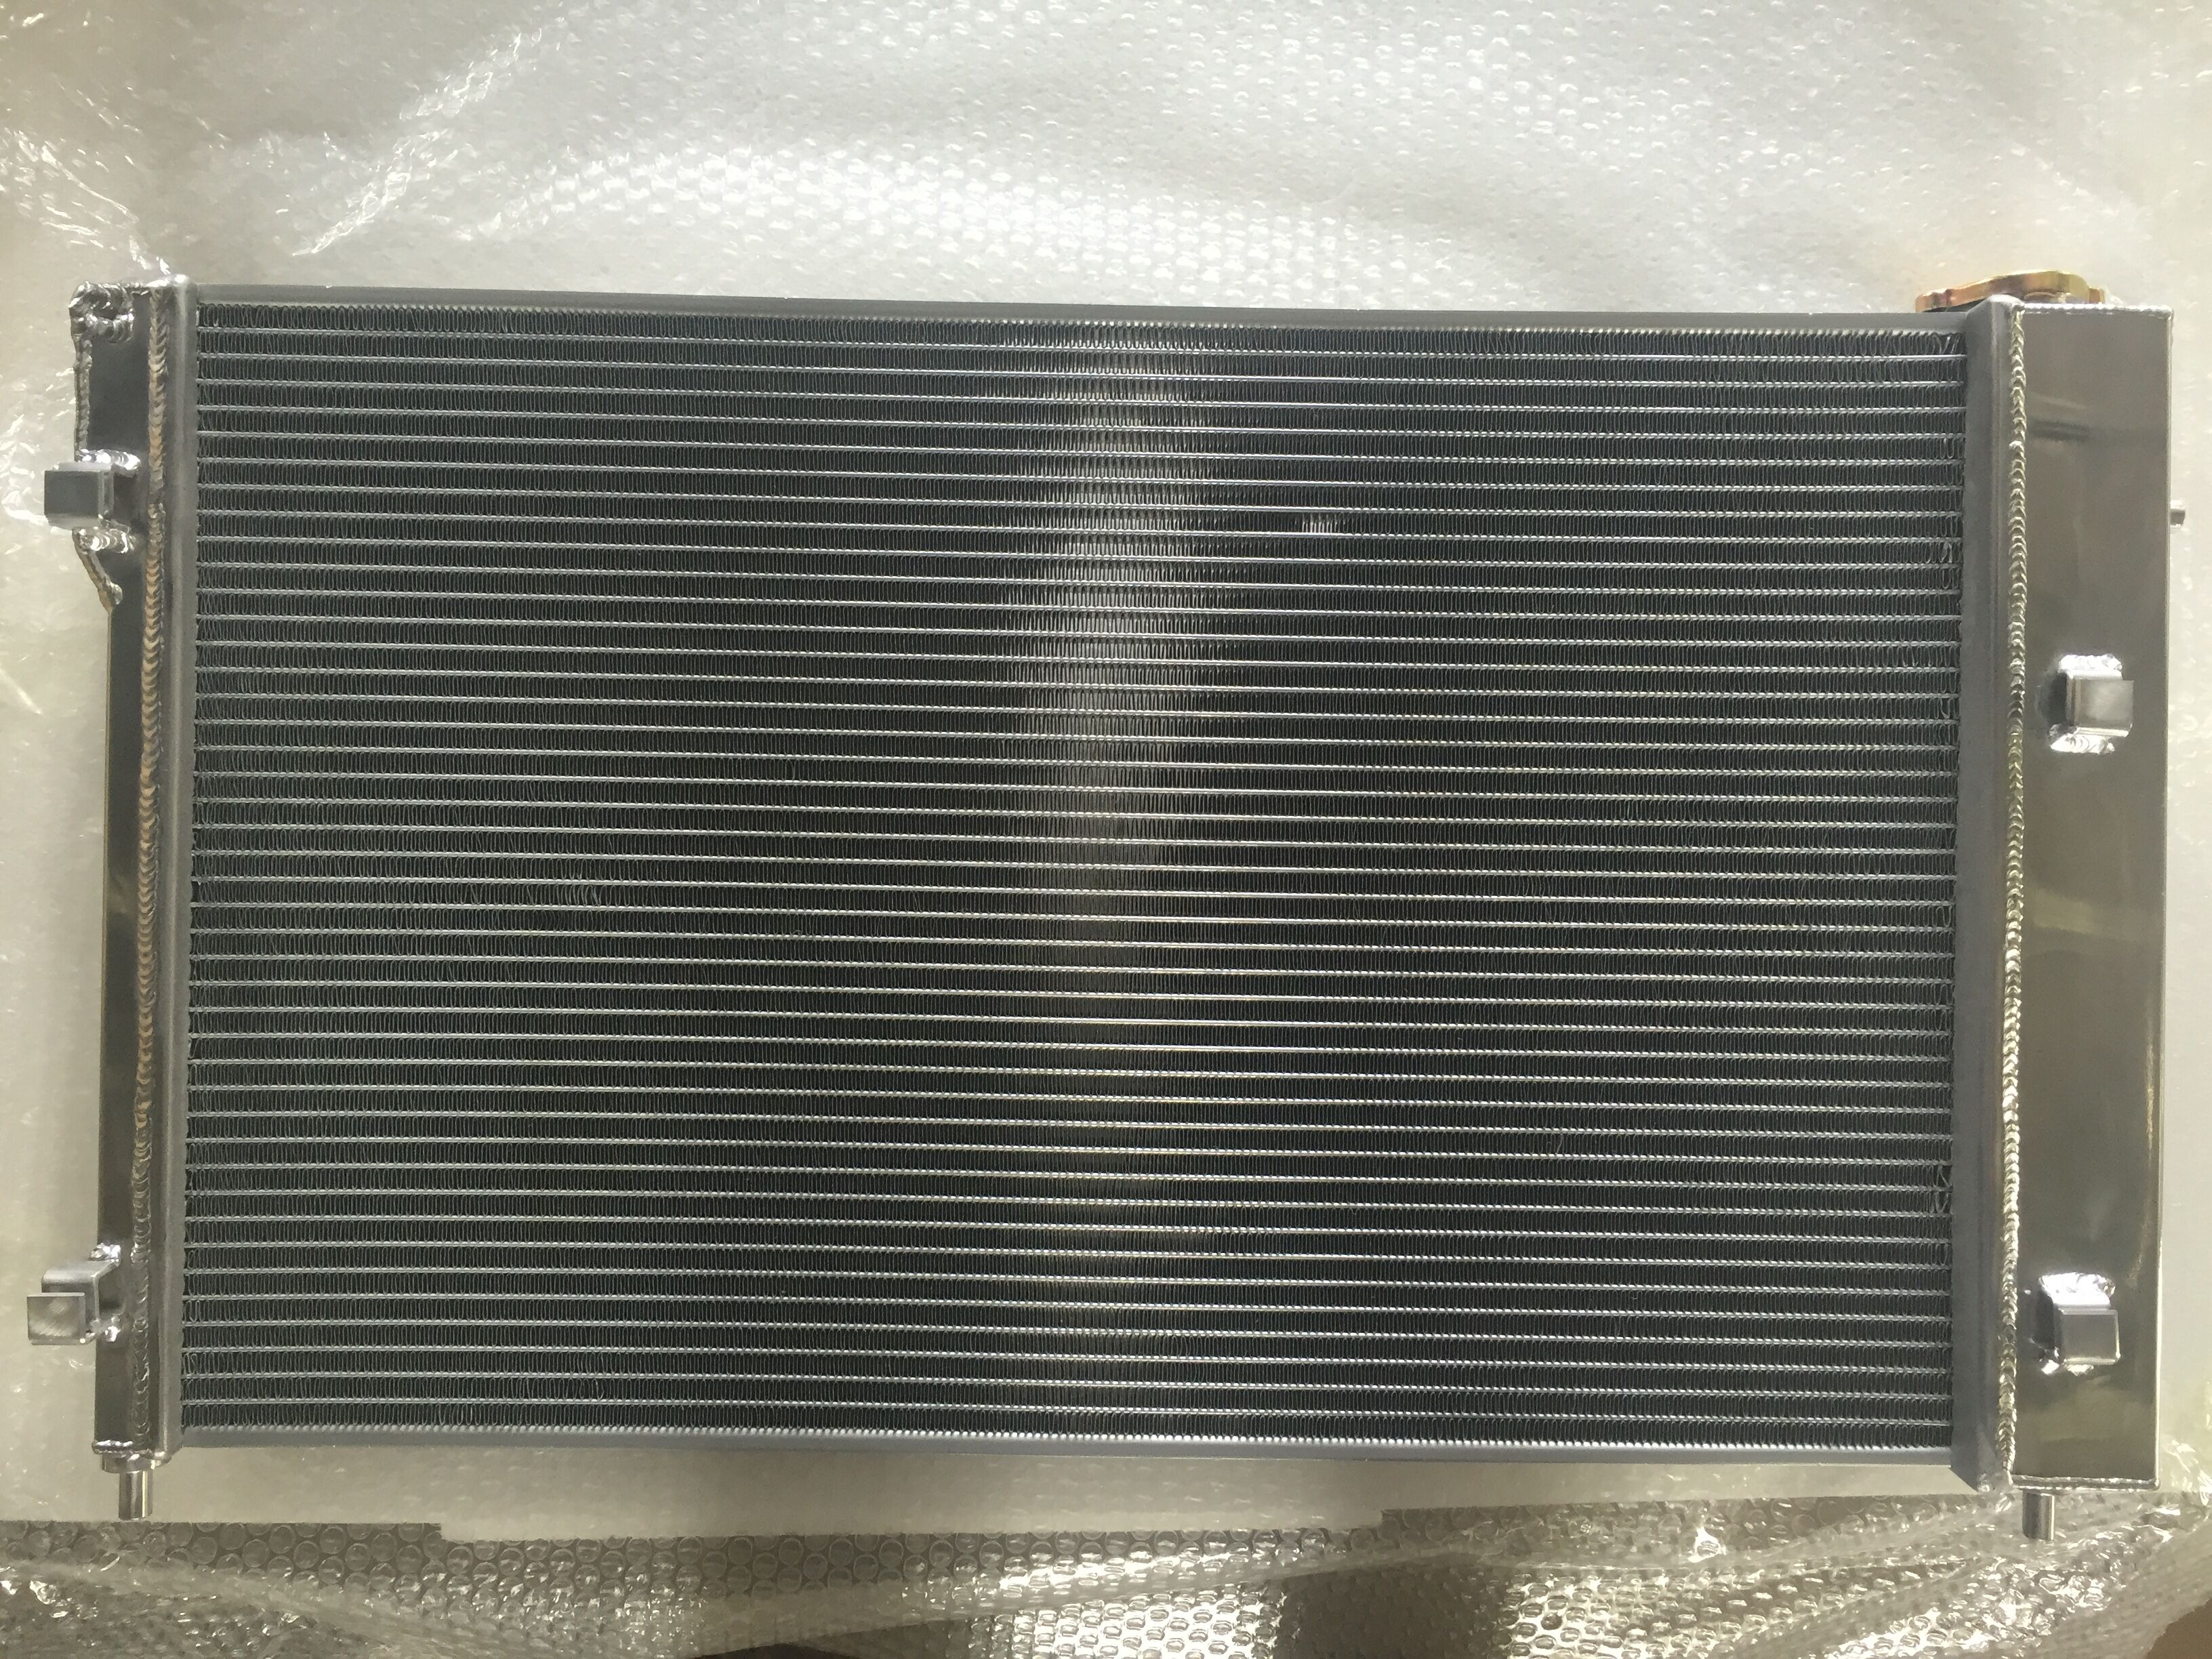 FOR 86-92 TOYOTA SUPRA MT TRI CORE 3-ROW DIRECT BOLT-ON ALUMINUM RACING RADIATOR